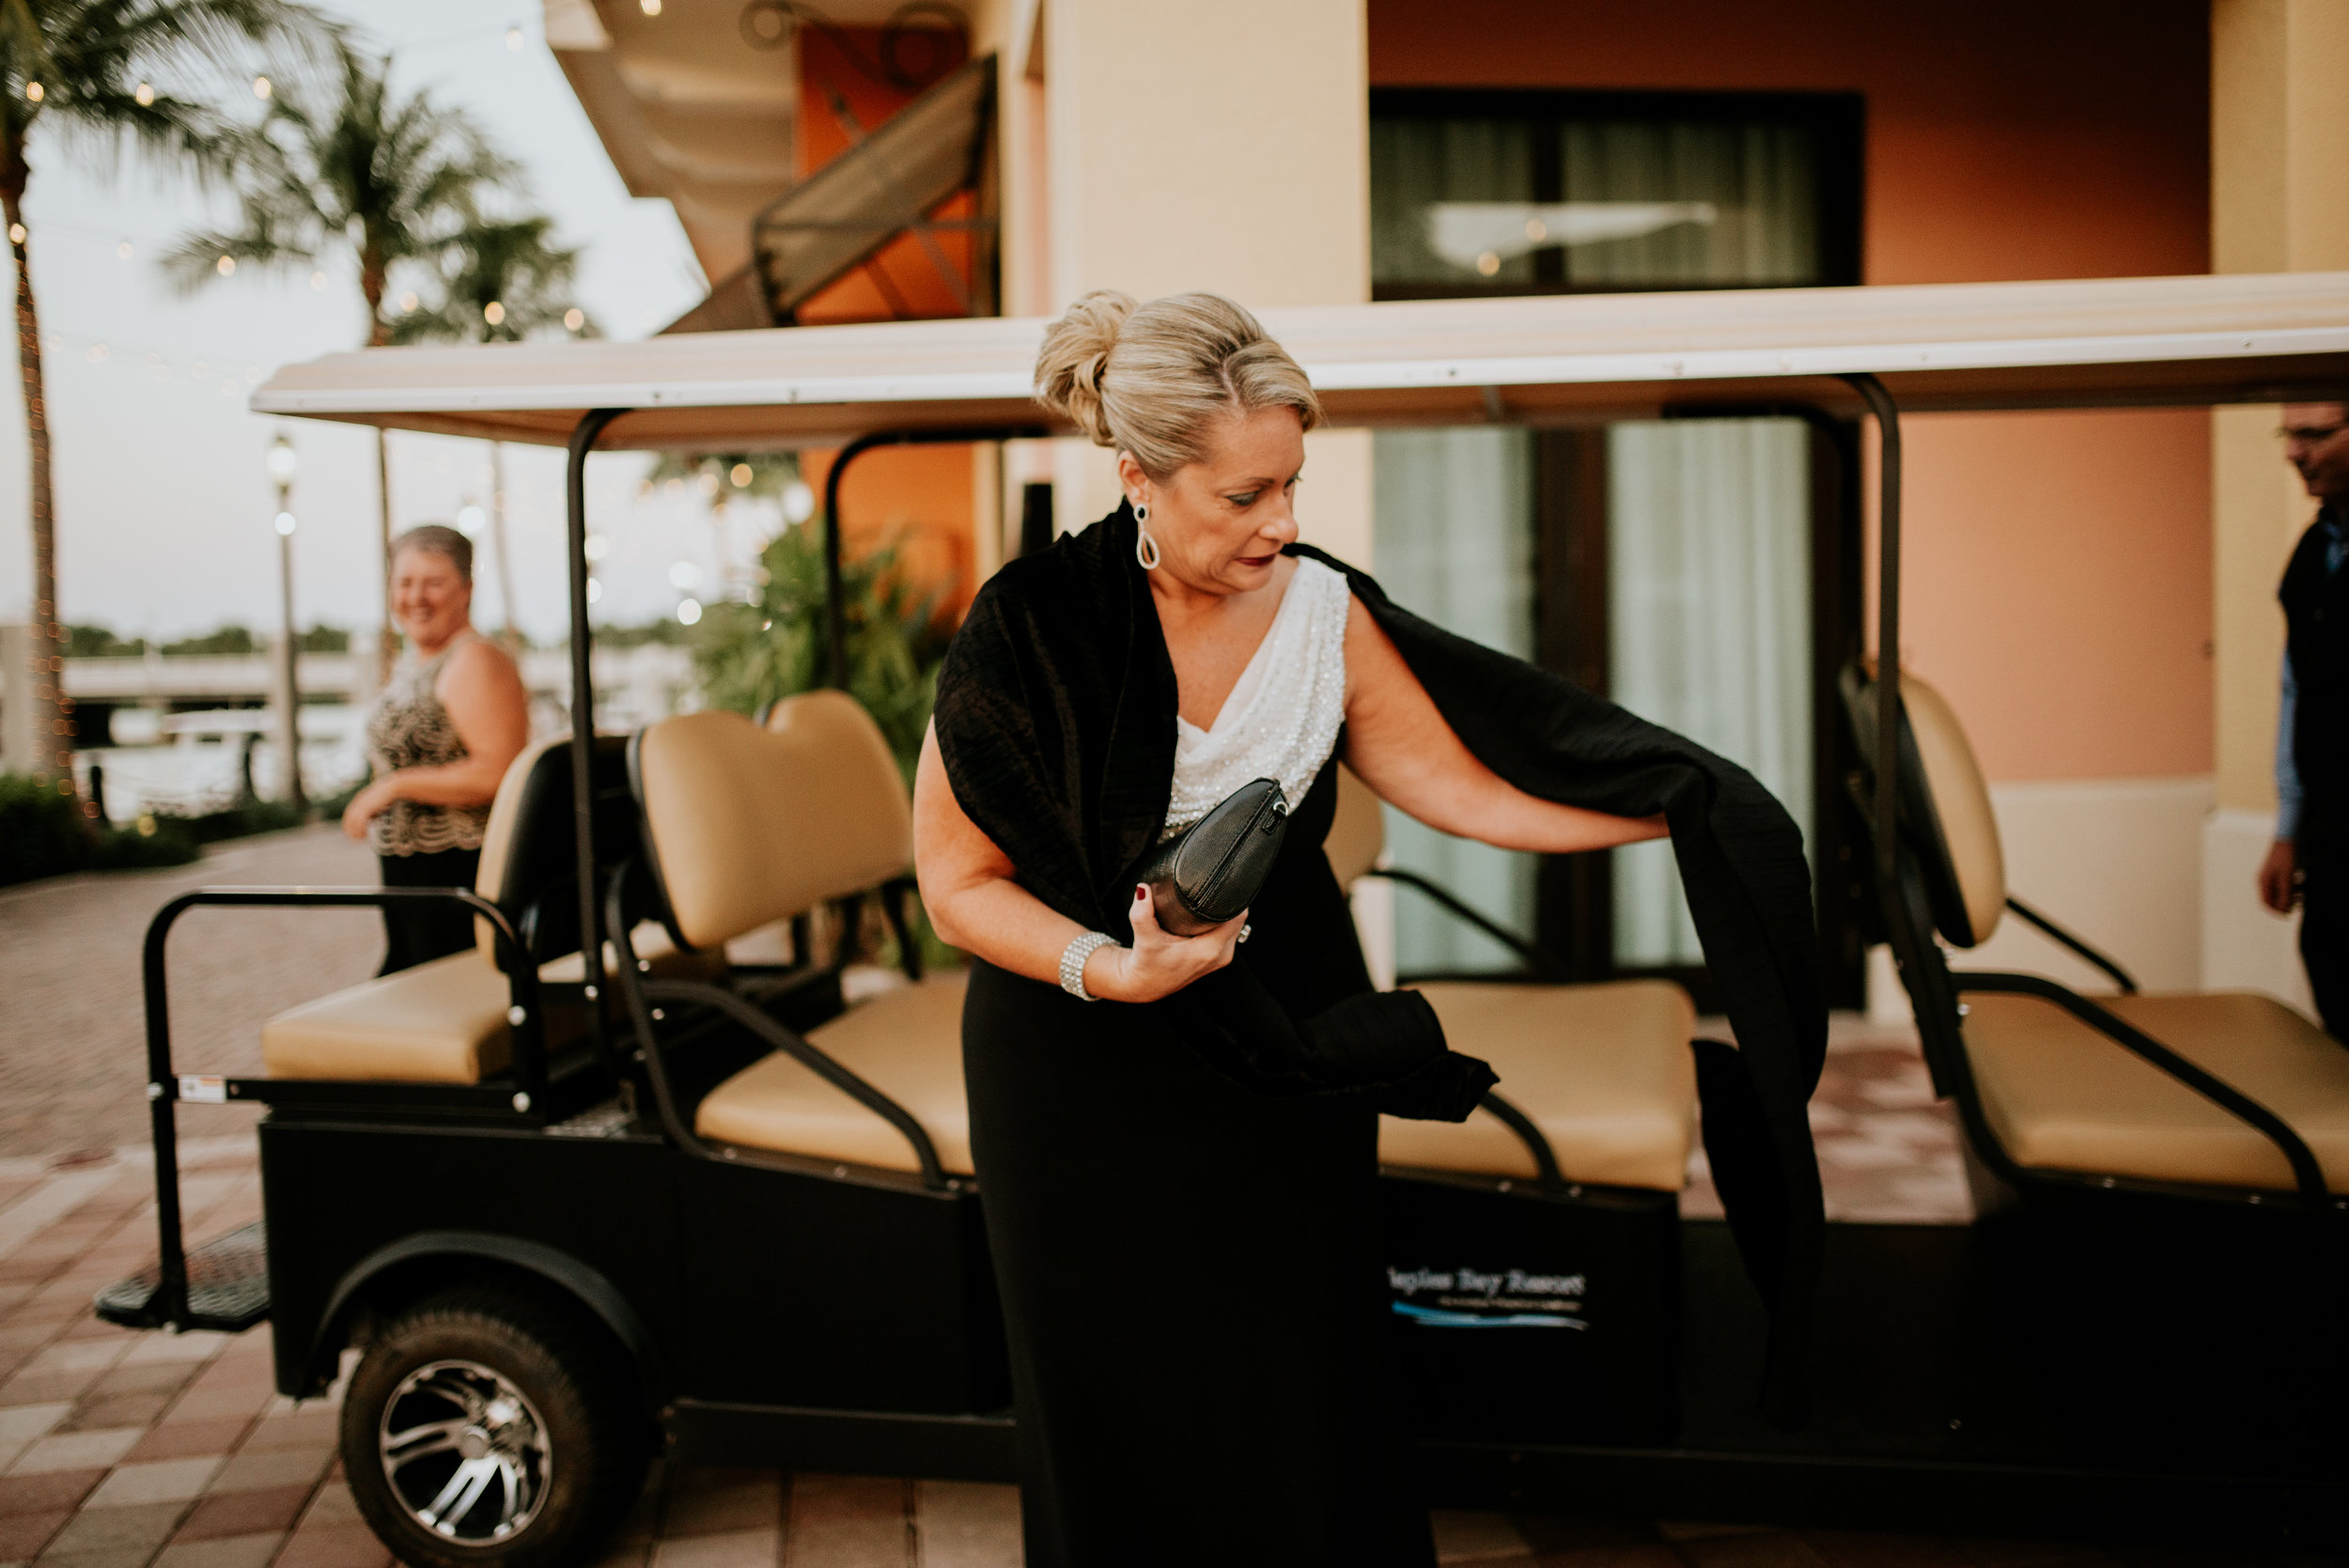 Naples Florida Naples Bay Resort Wedding Photographer 63